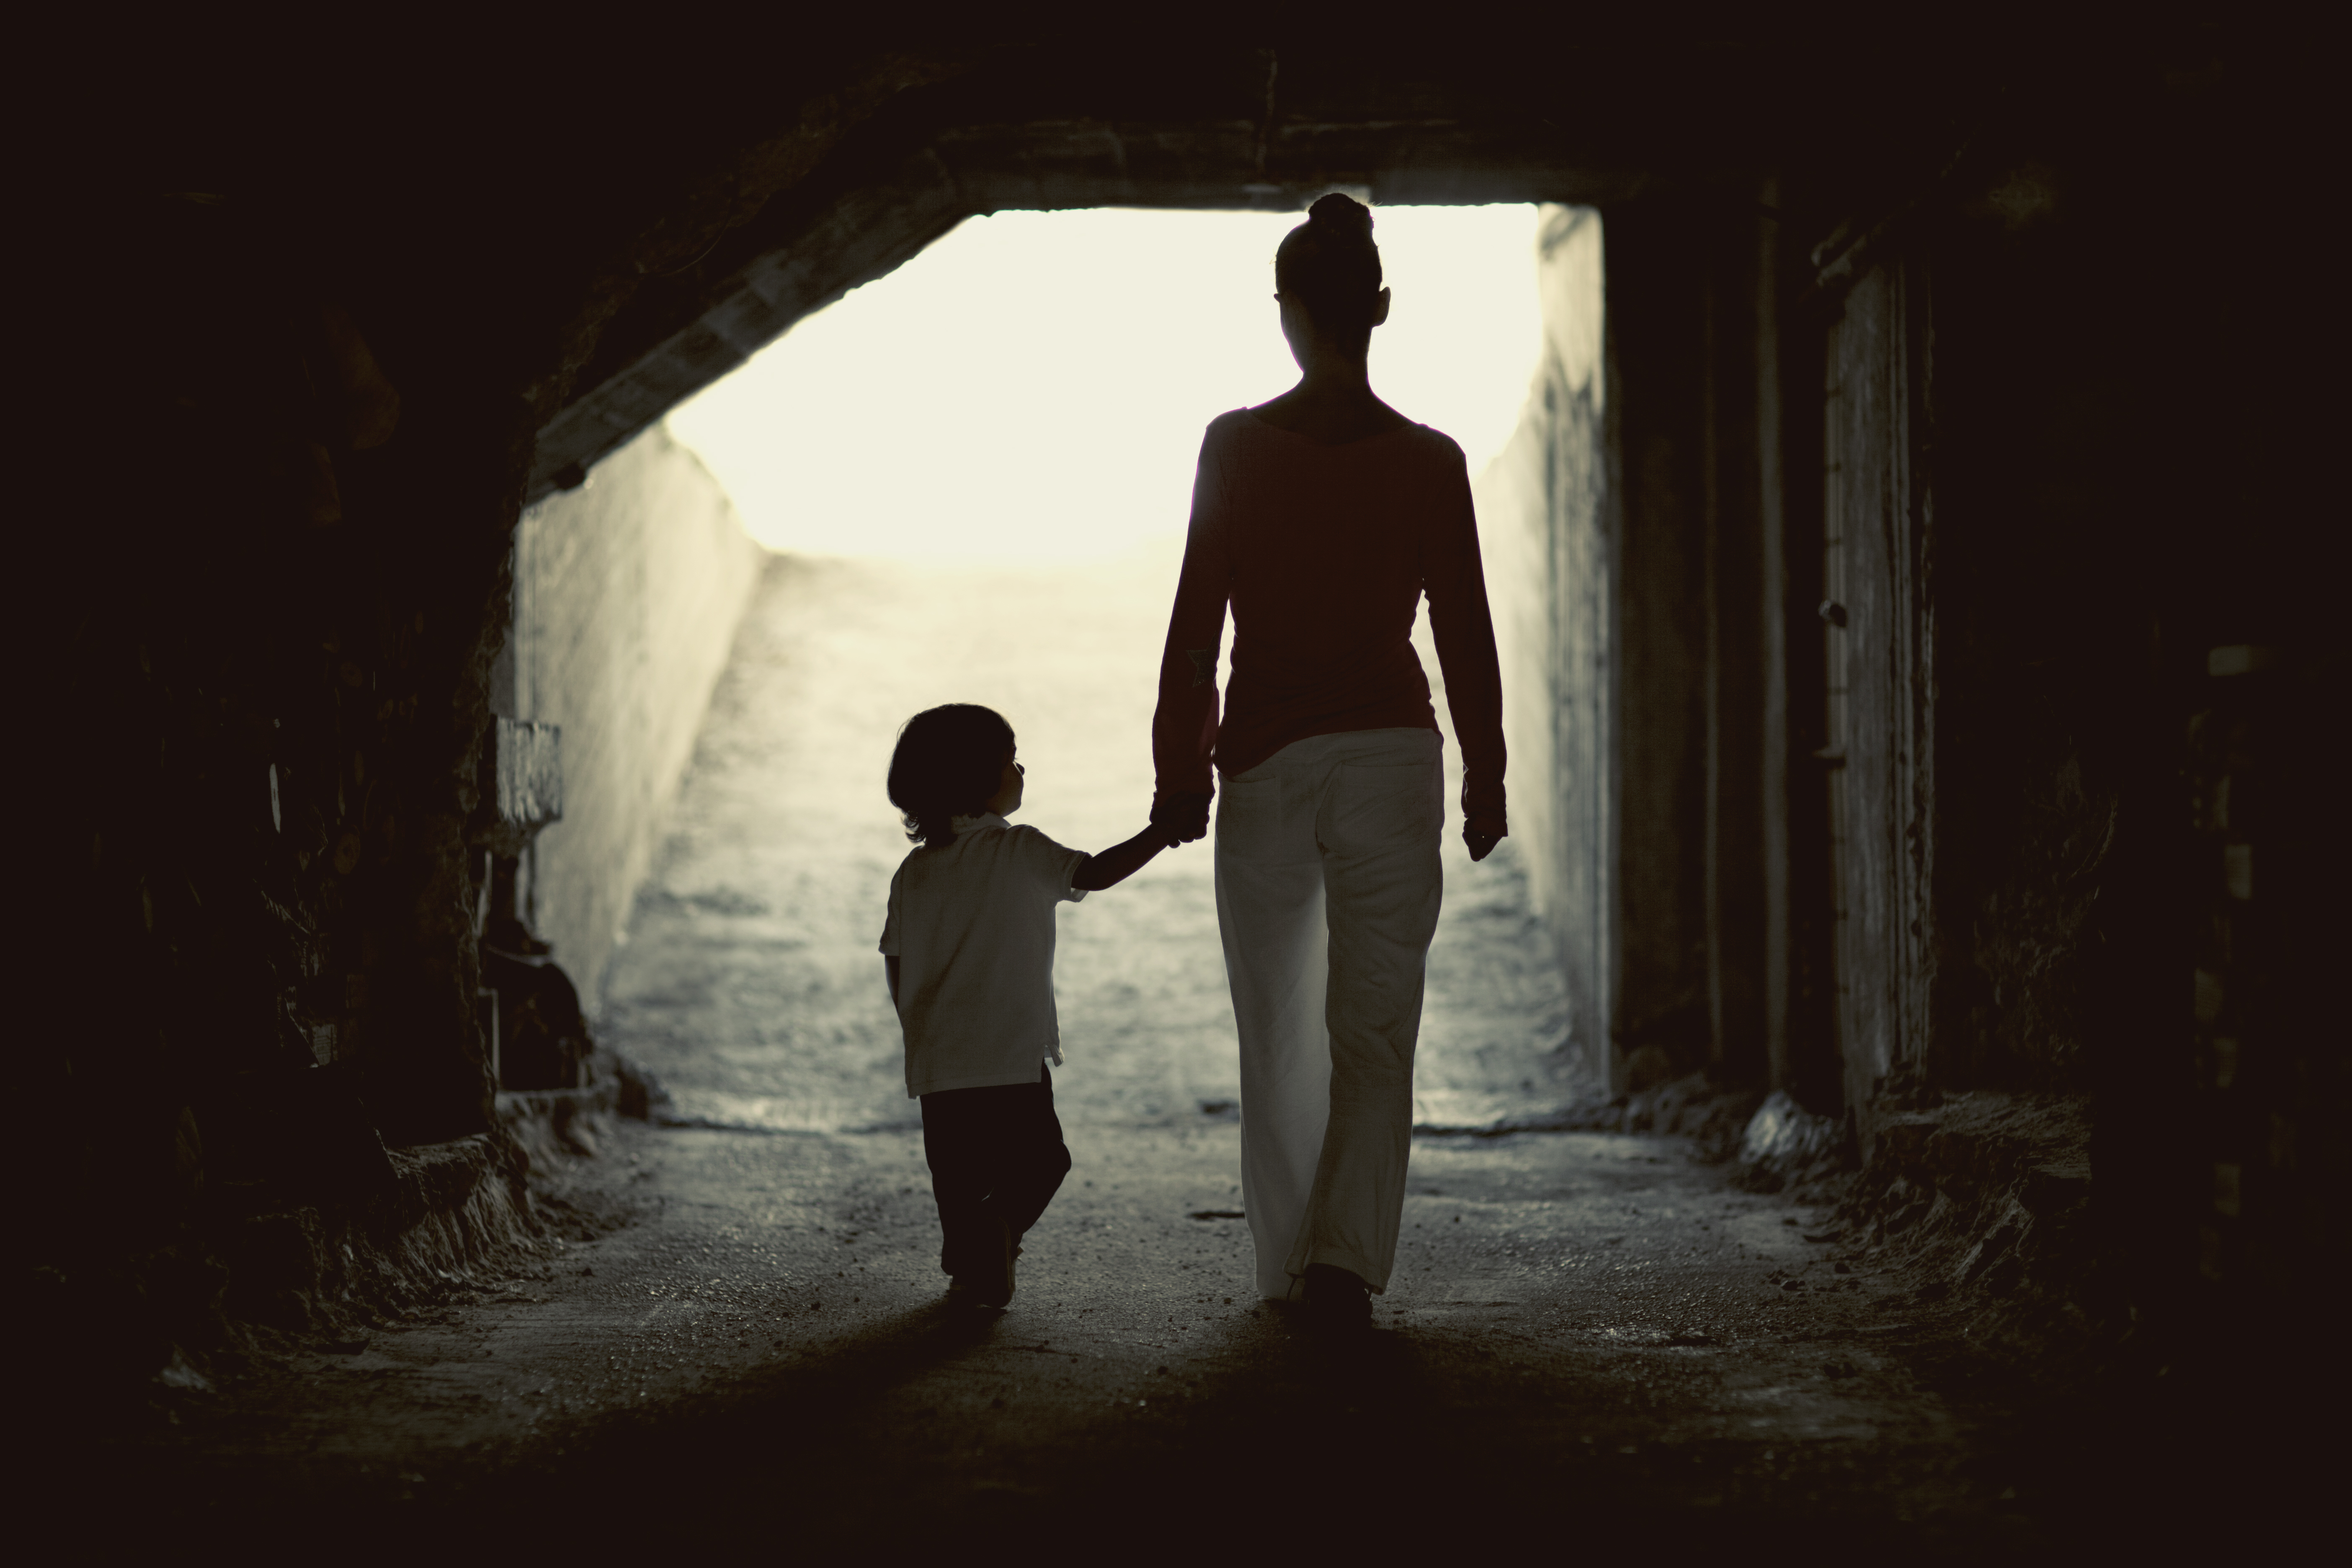 Mother walking in the dark with her son